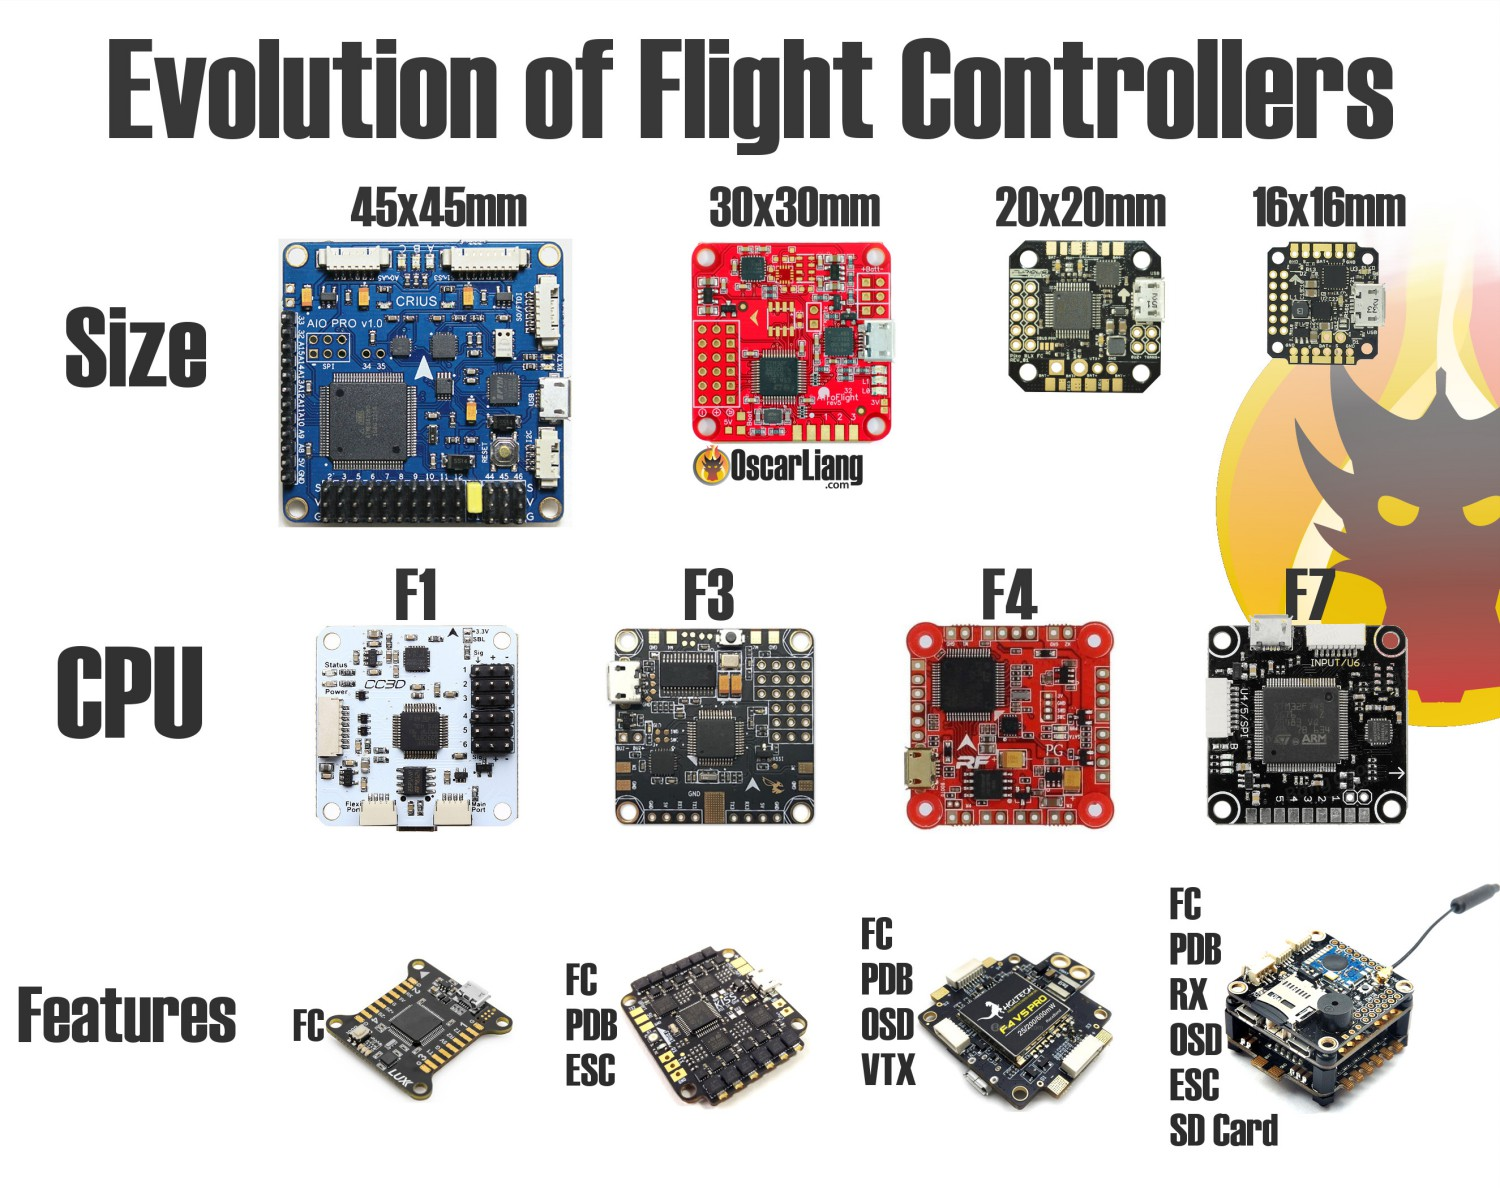 How To Choose Flight Controller For Quadcopter Oscar Liang Naza M Lite Wiring Diagram Sizes Mcu And Features